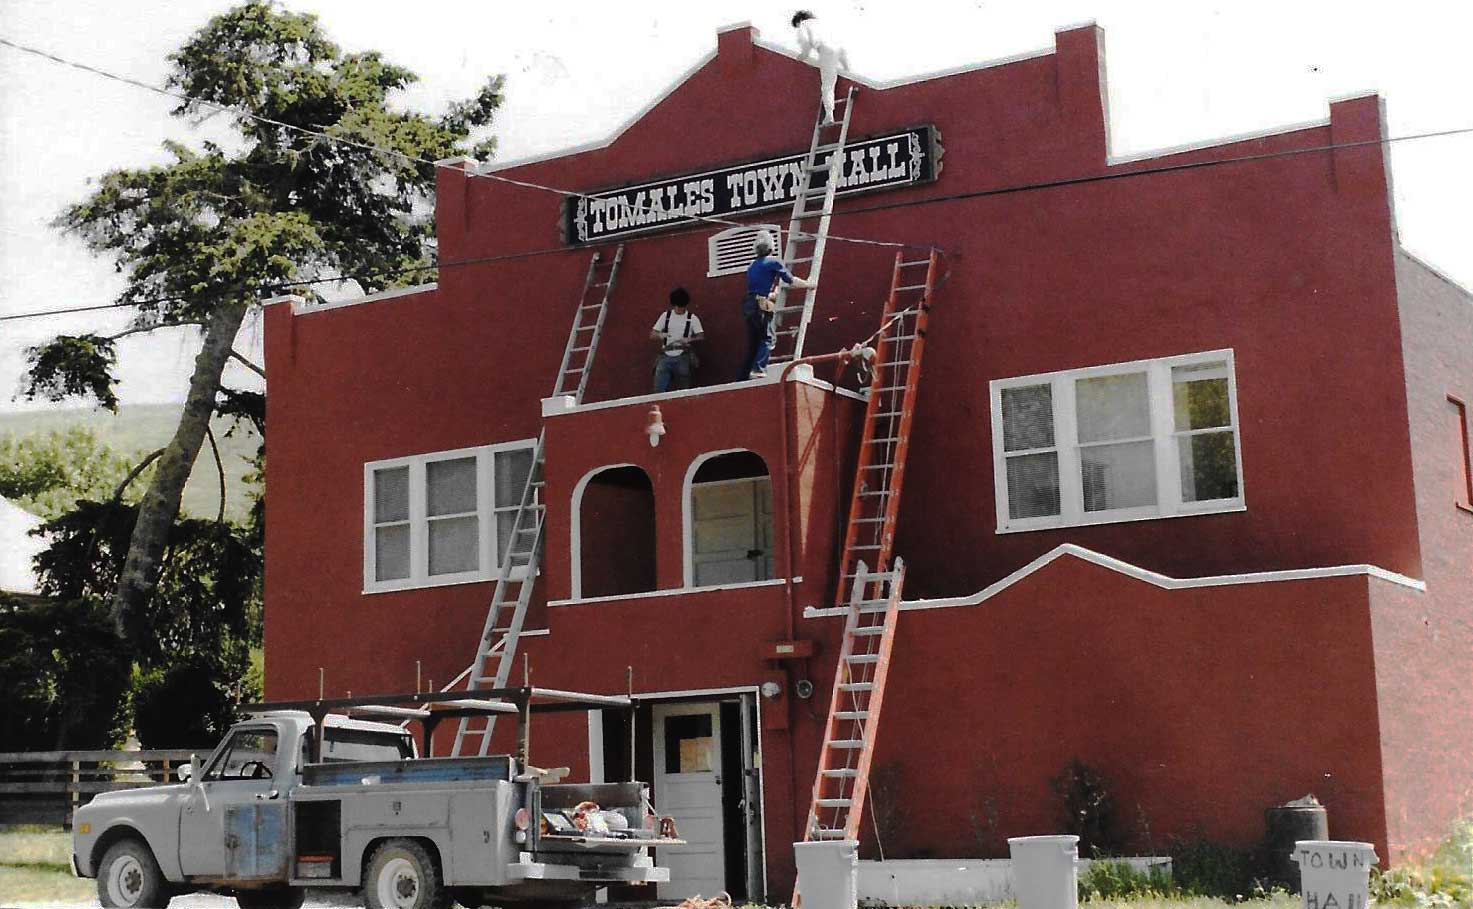 Volunteer crew painting the Town Hall red, c. 1970s.